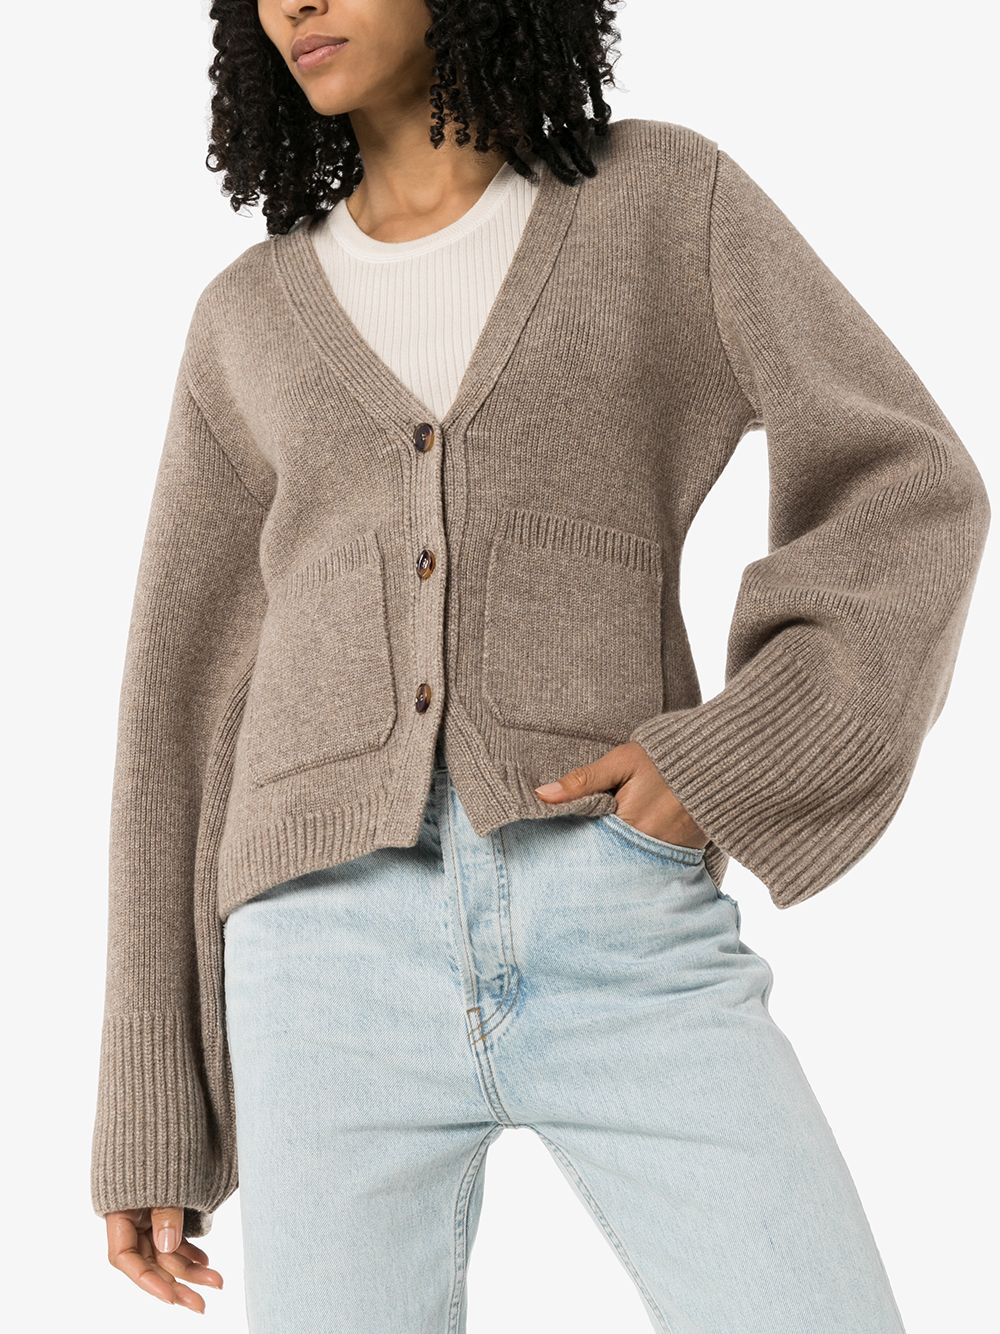 Rihanna donning a Casual taupe ribbed Khaite woolen cardigan with a woolen fabric, extra long sleeves, button front and a V-neck